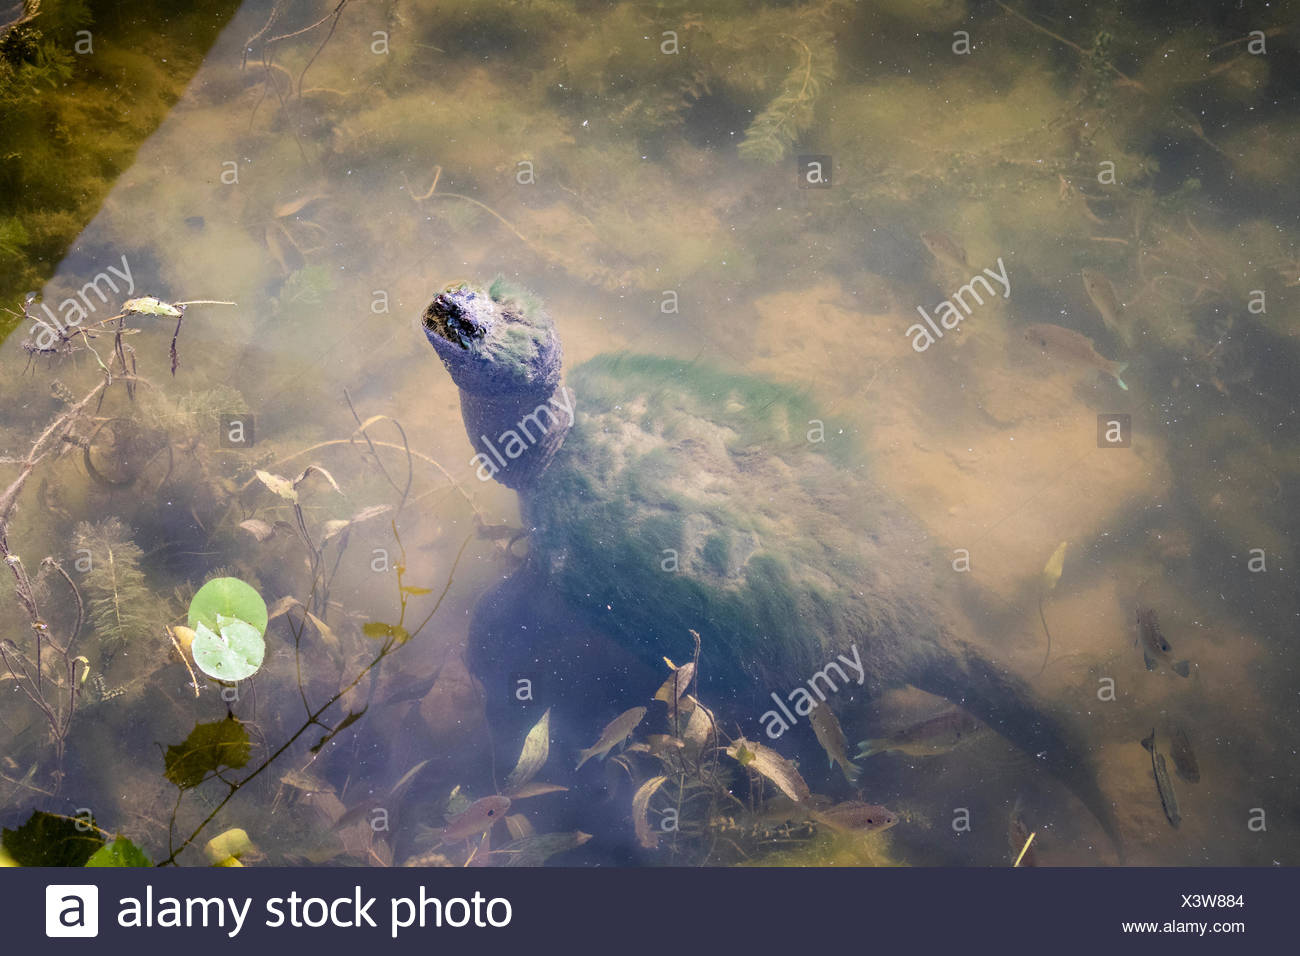 Snapping Turtle (Chelydra serpentina) with nose protruding from water in the Pinery Provincial Park, Ontario, Canada - Stock Image